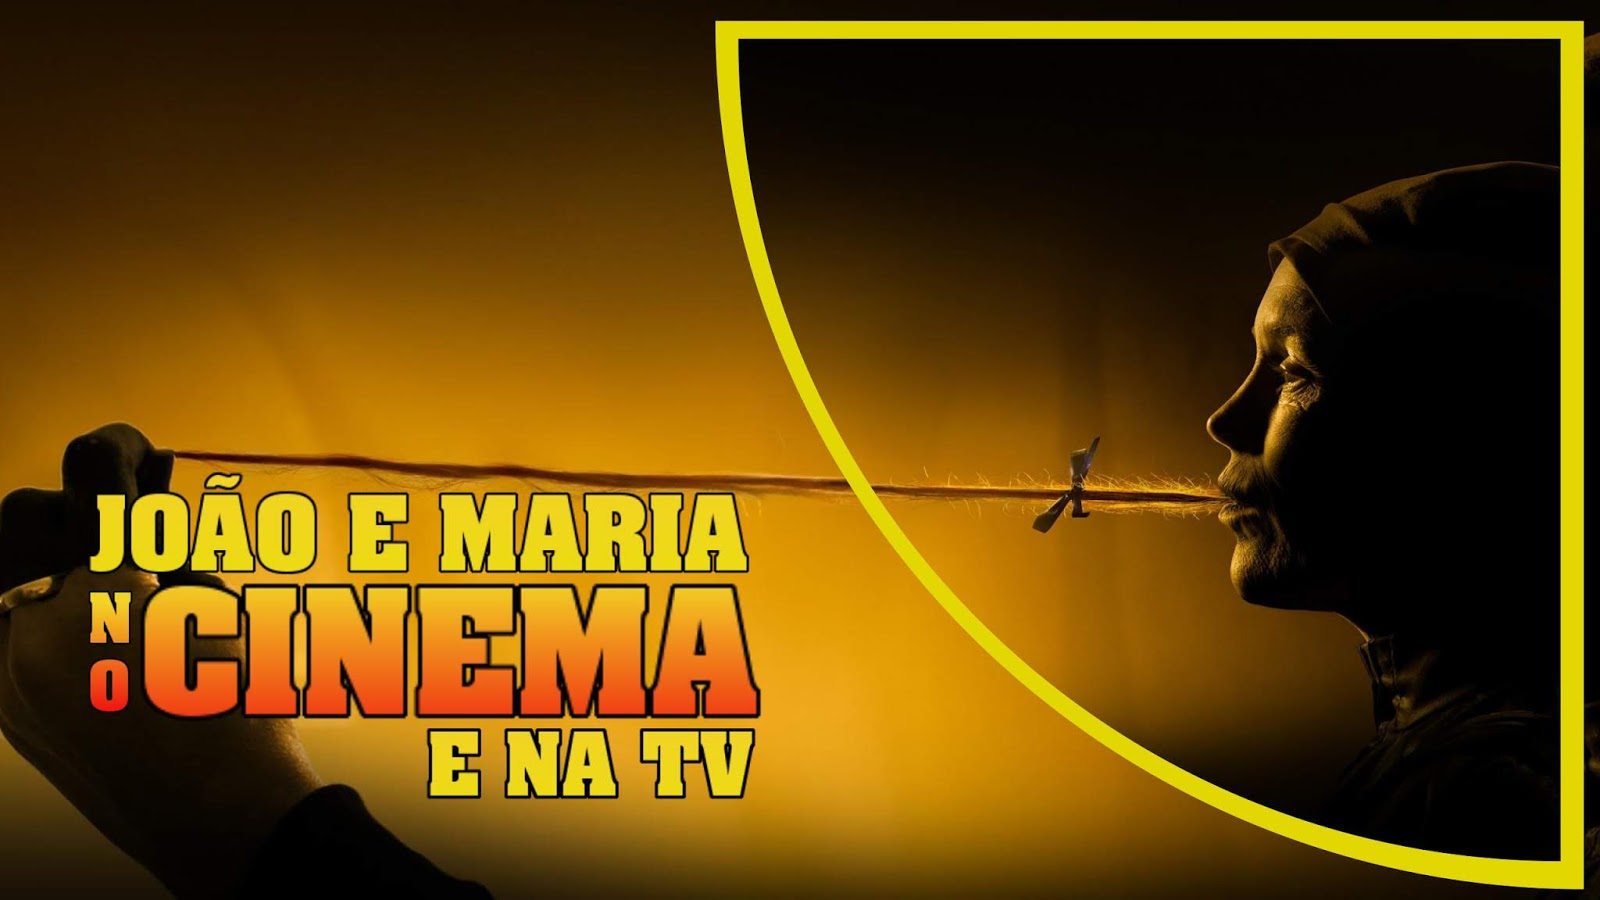 joao-e-maria-no-cinema-e-tv.